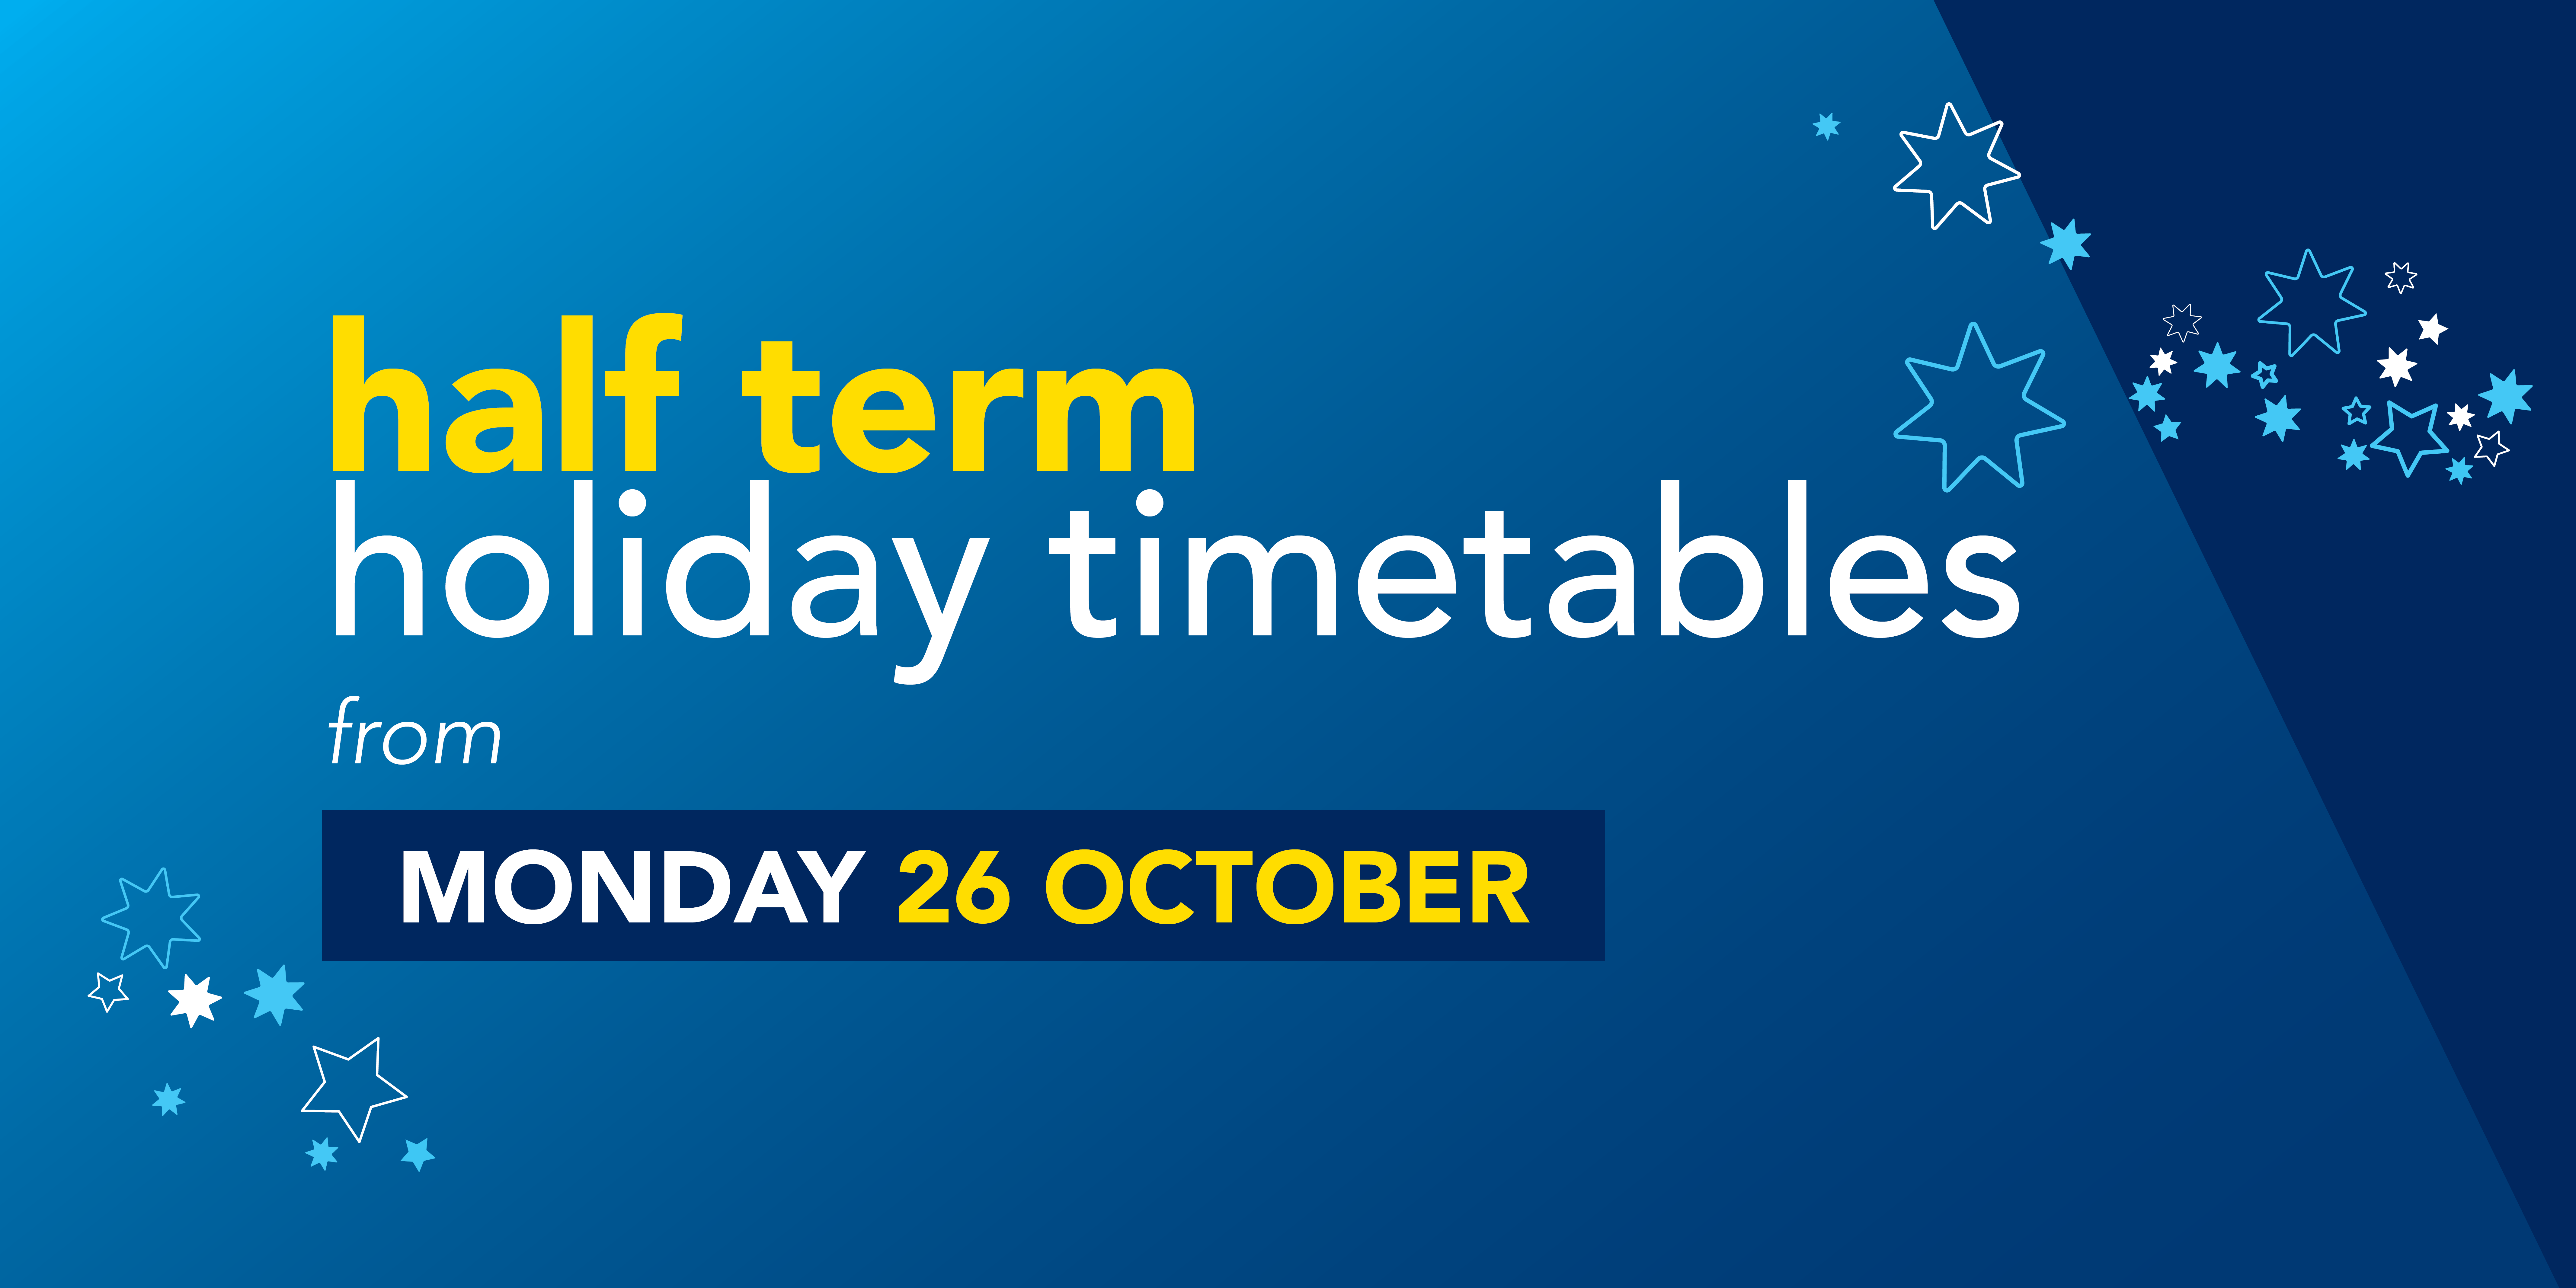 Image saying 'half term holiday timetables from Monday 26th October' with a bus